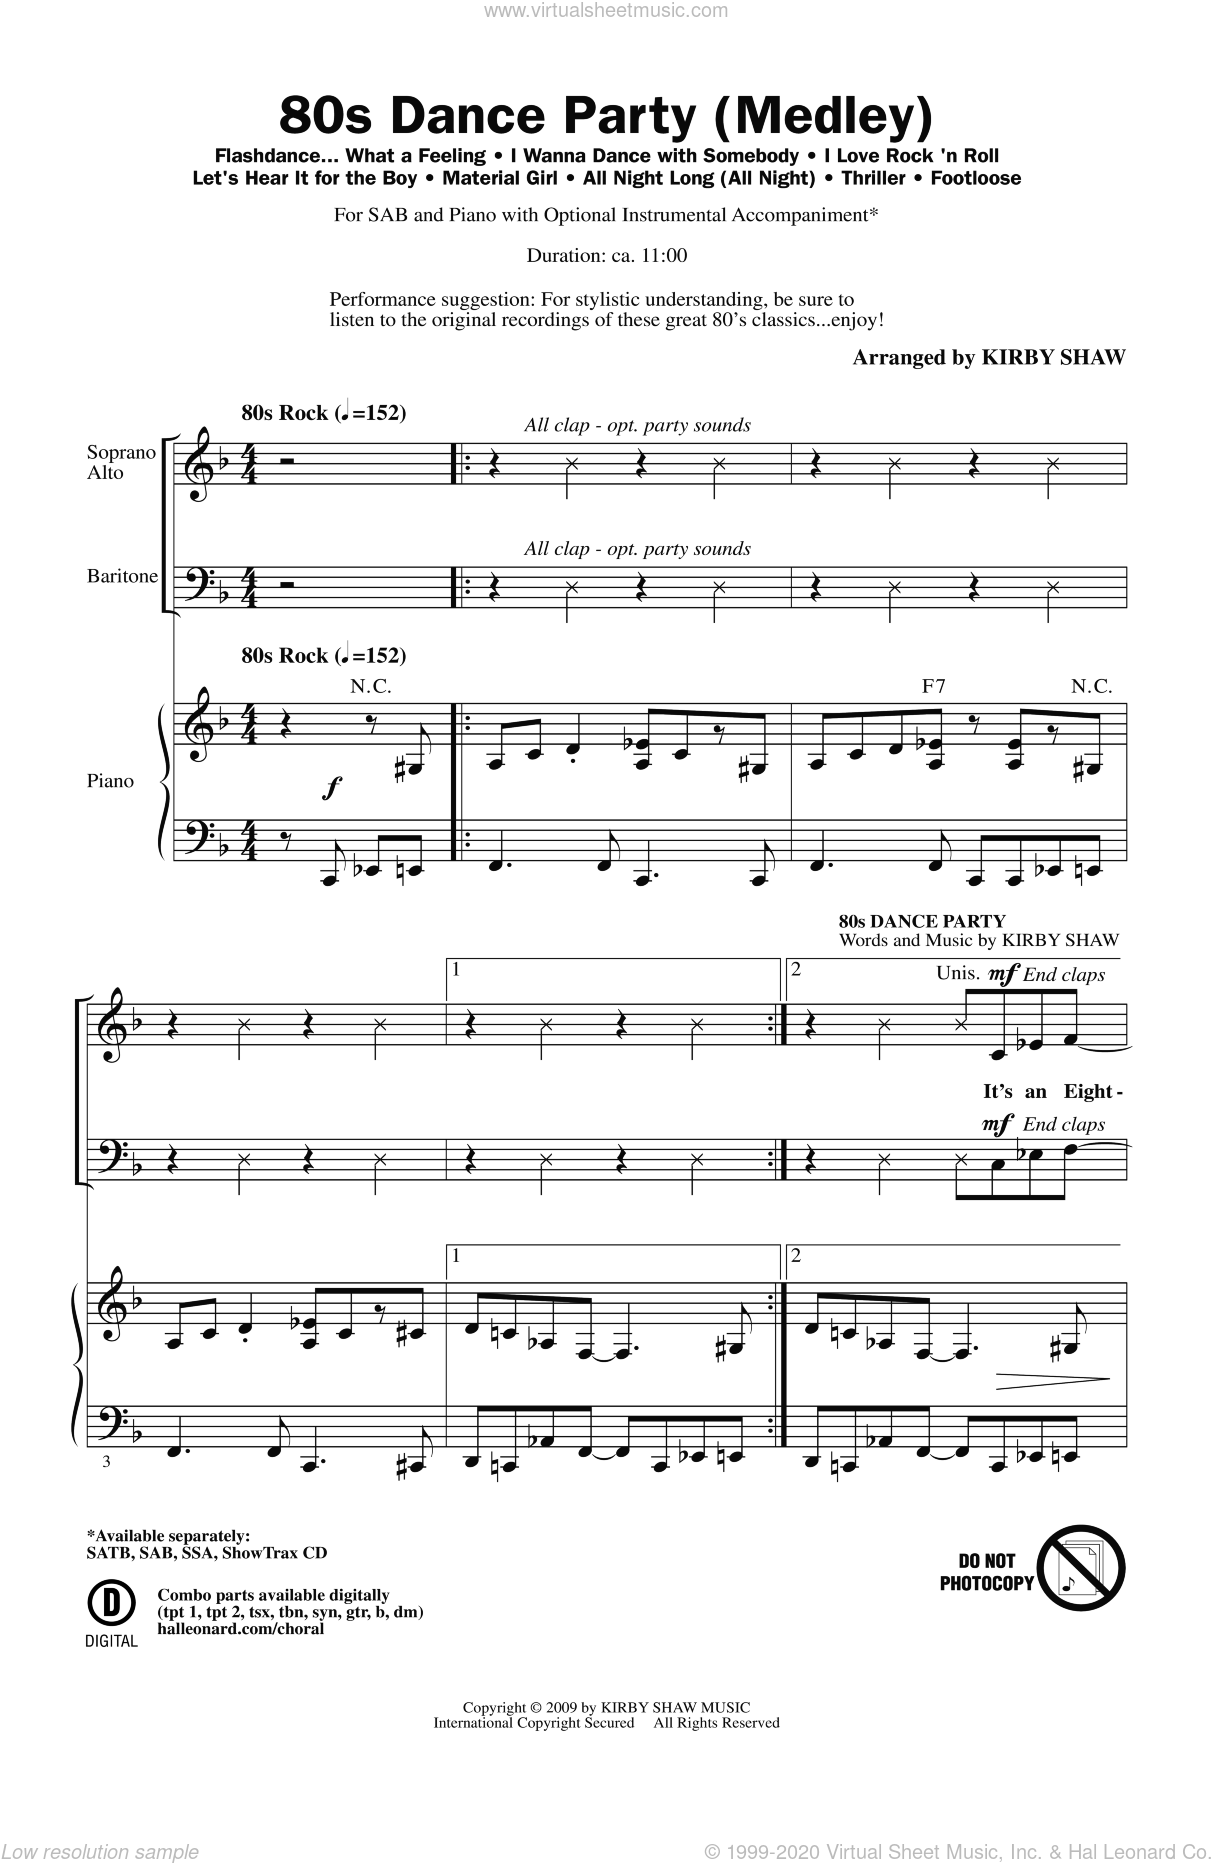 80s Dance Party (Medley) sheet music for choir and piano (SAB) by Kirby Shaw